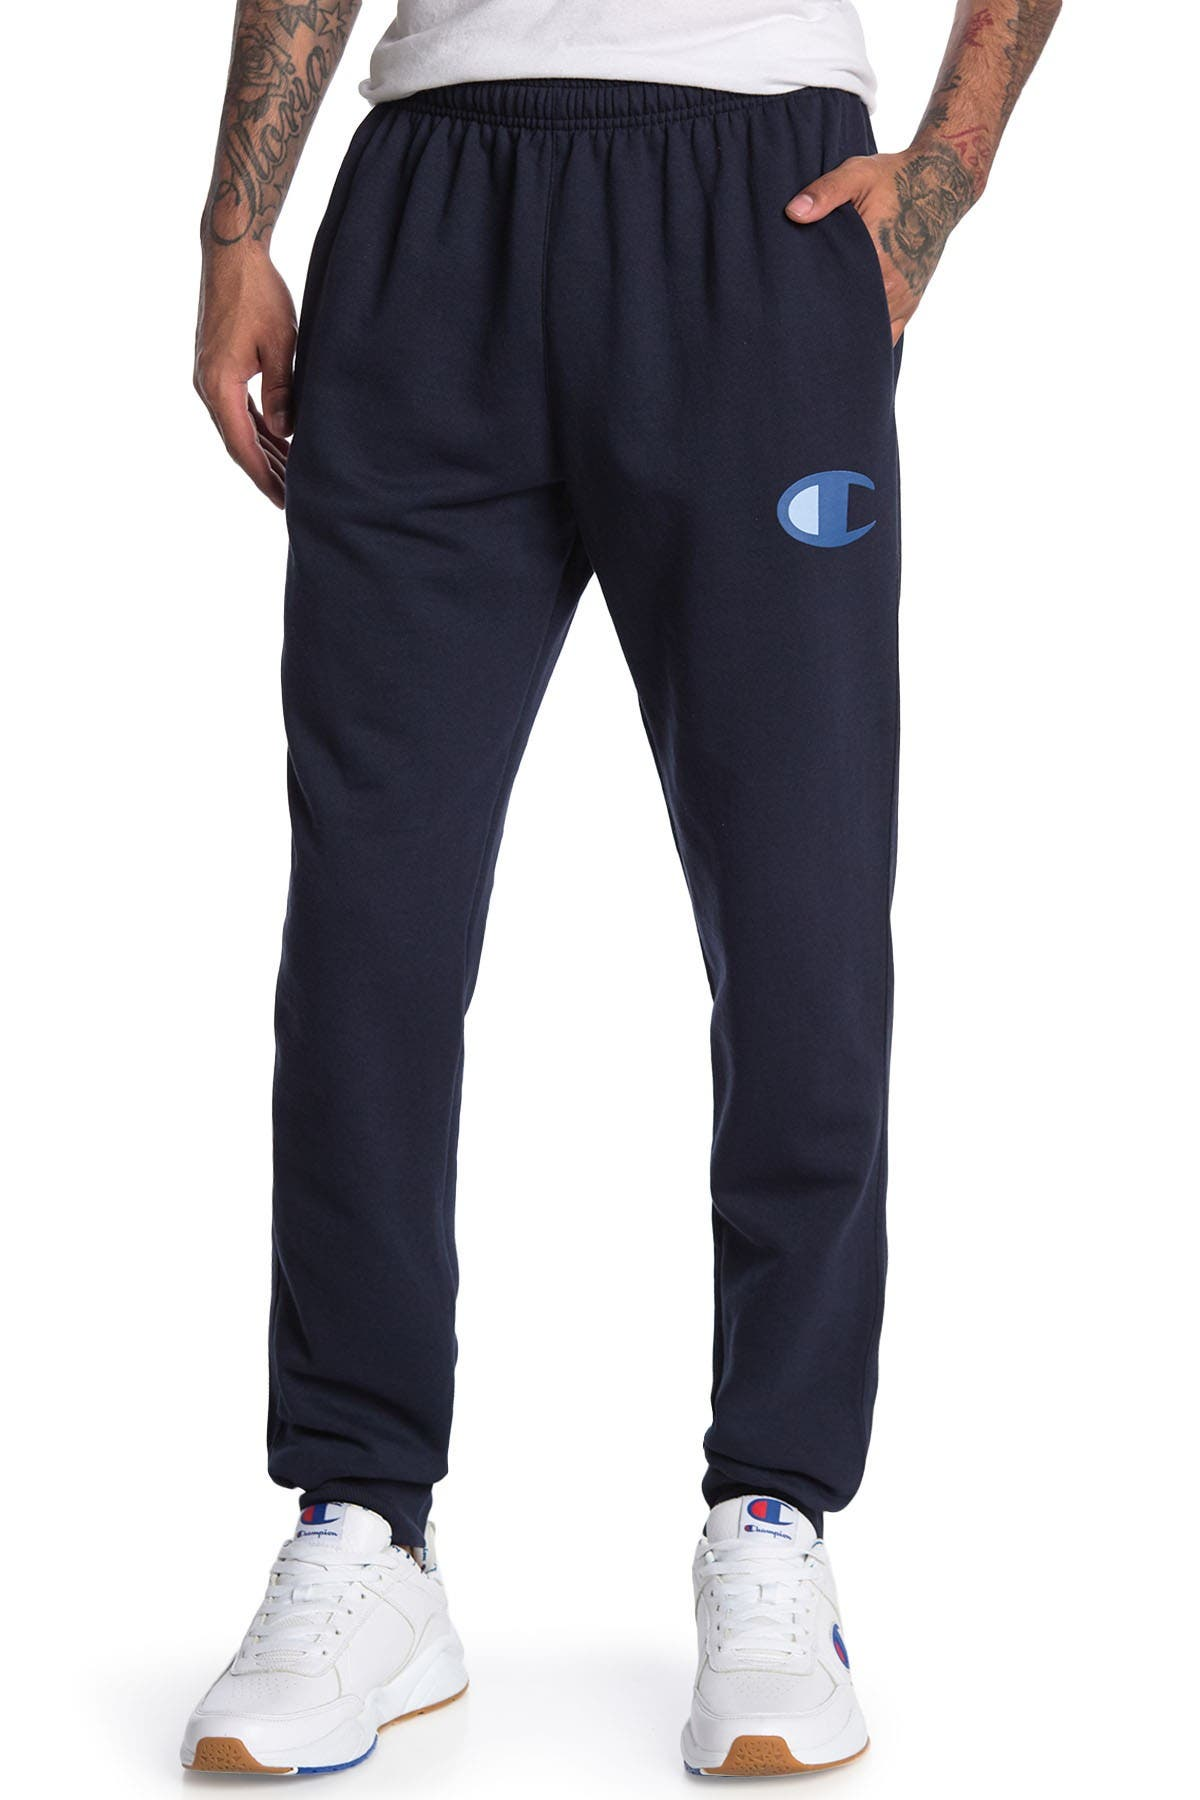 Image of Champion Powerblend Graphic Joggers